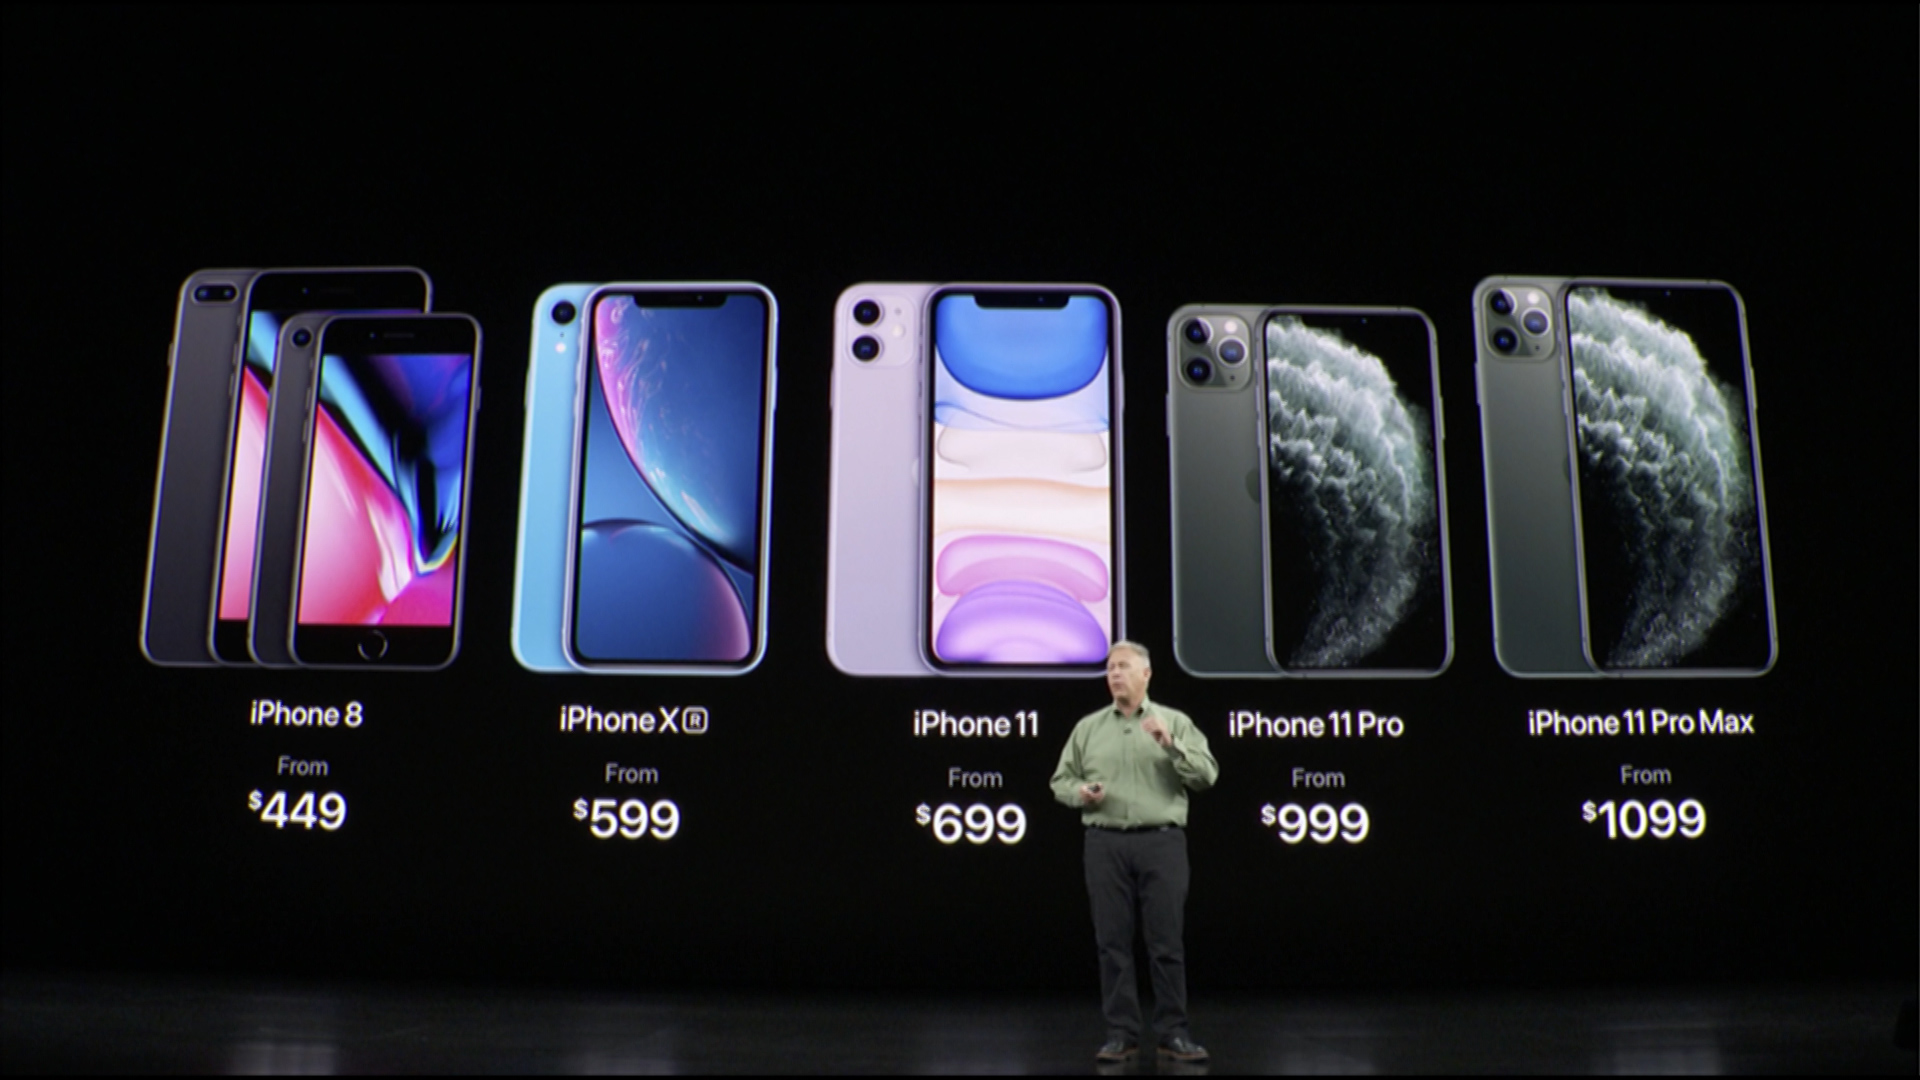 Apple Launches New Iphone 11 Apple Watch And Services Like Apple Tv The Washington Post